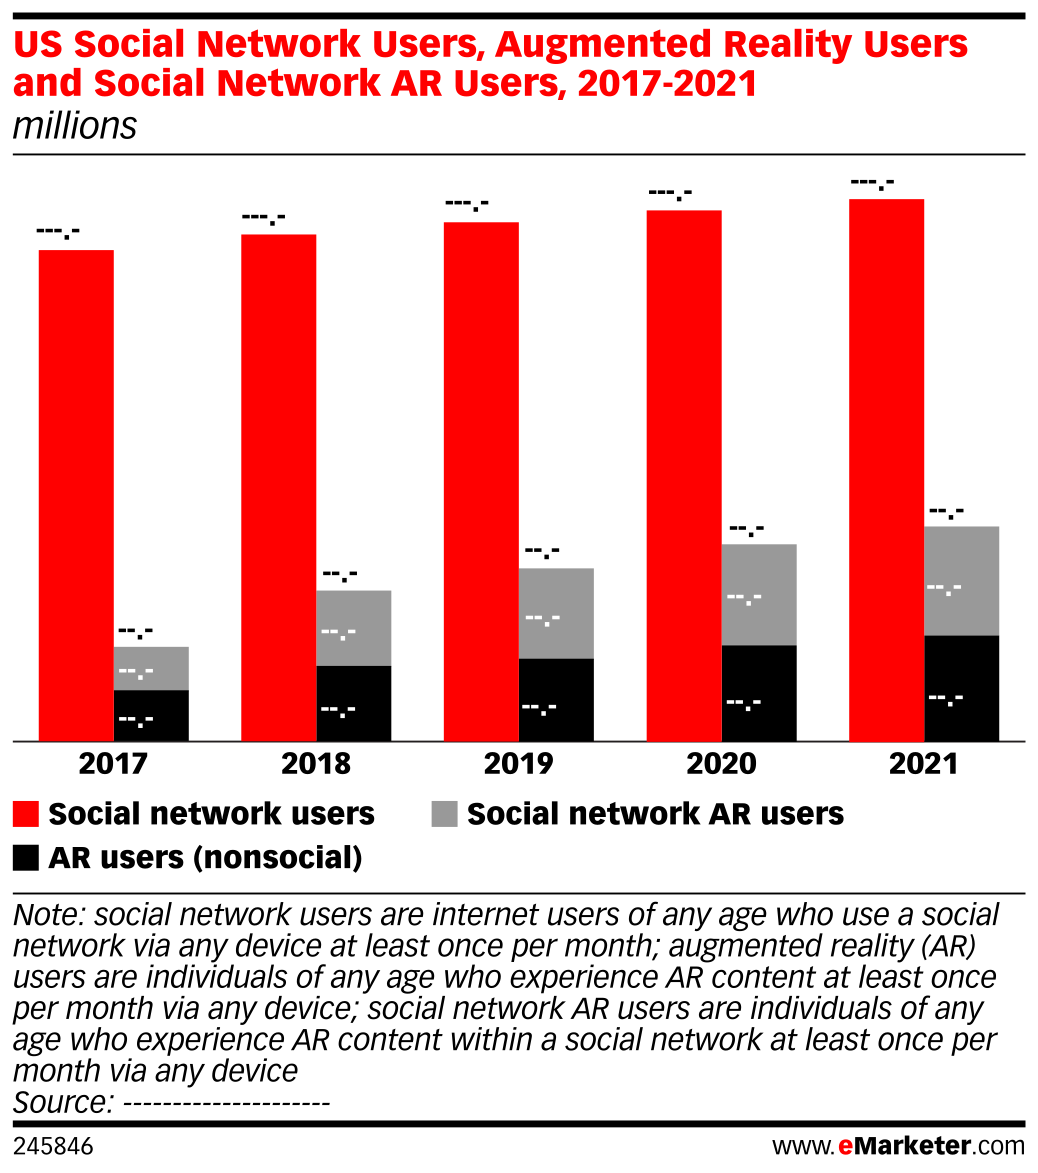 US Social Network Users, Augmented Reality Users and Social Network AR Users, 2017-2021 (millions)